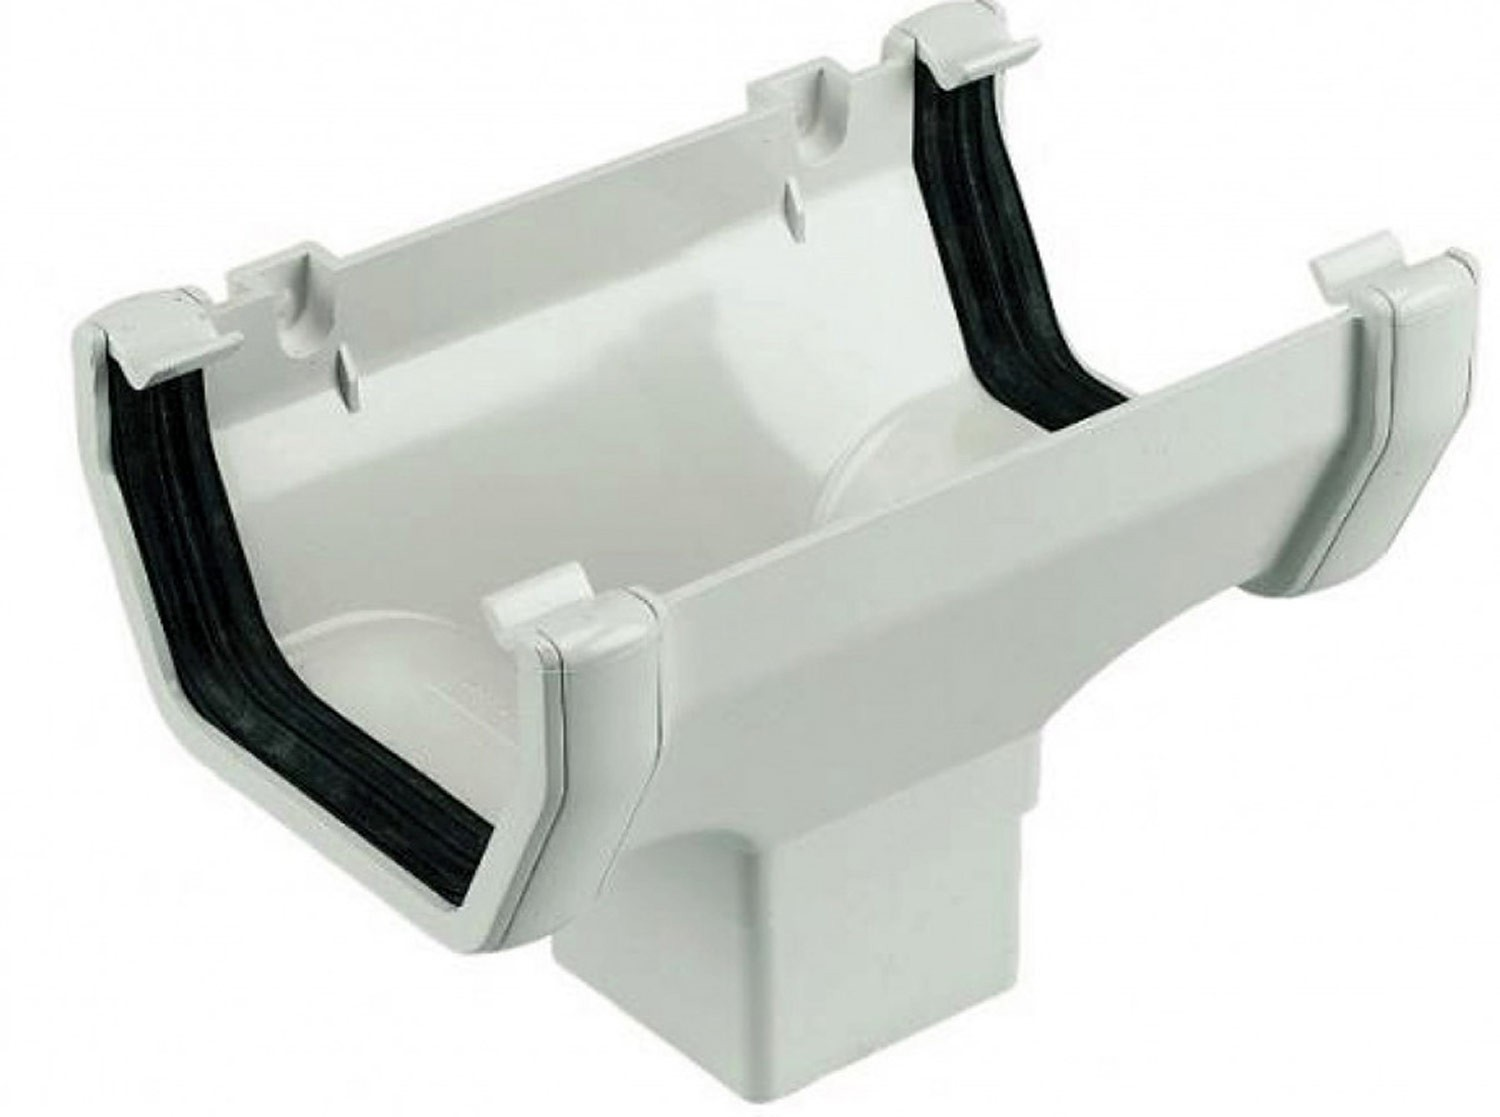 Running Outlet Square (White)